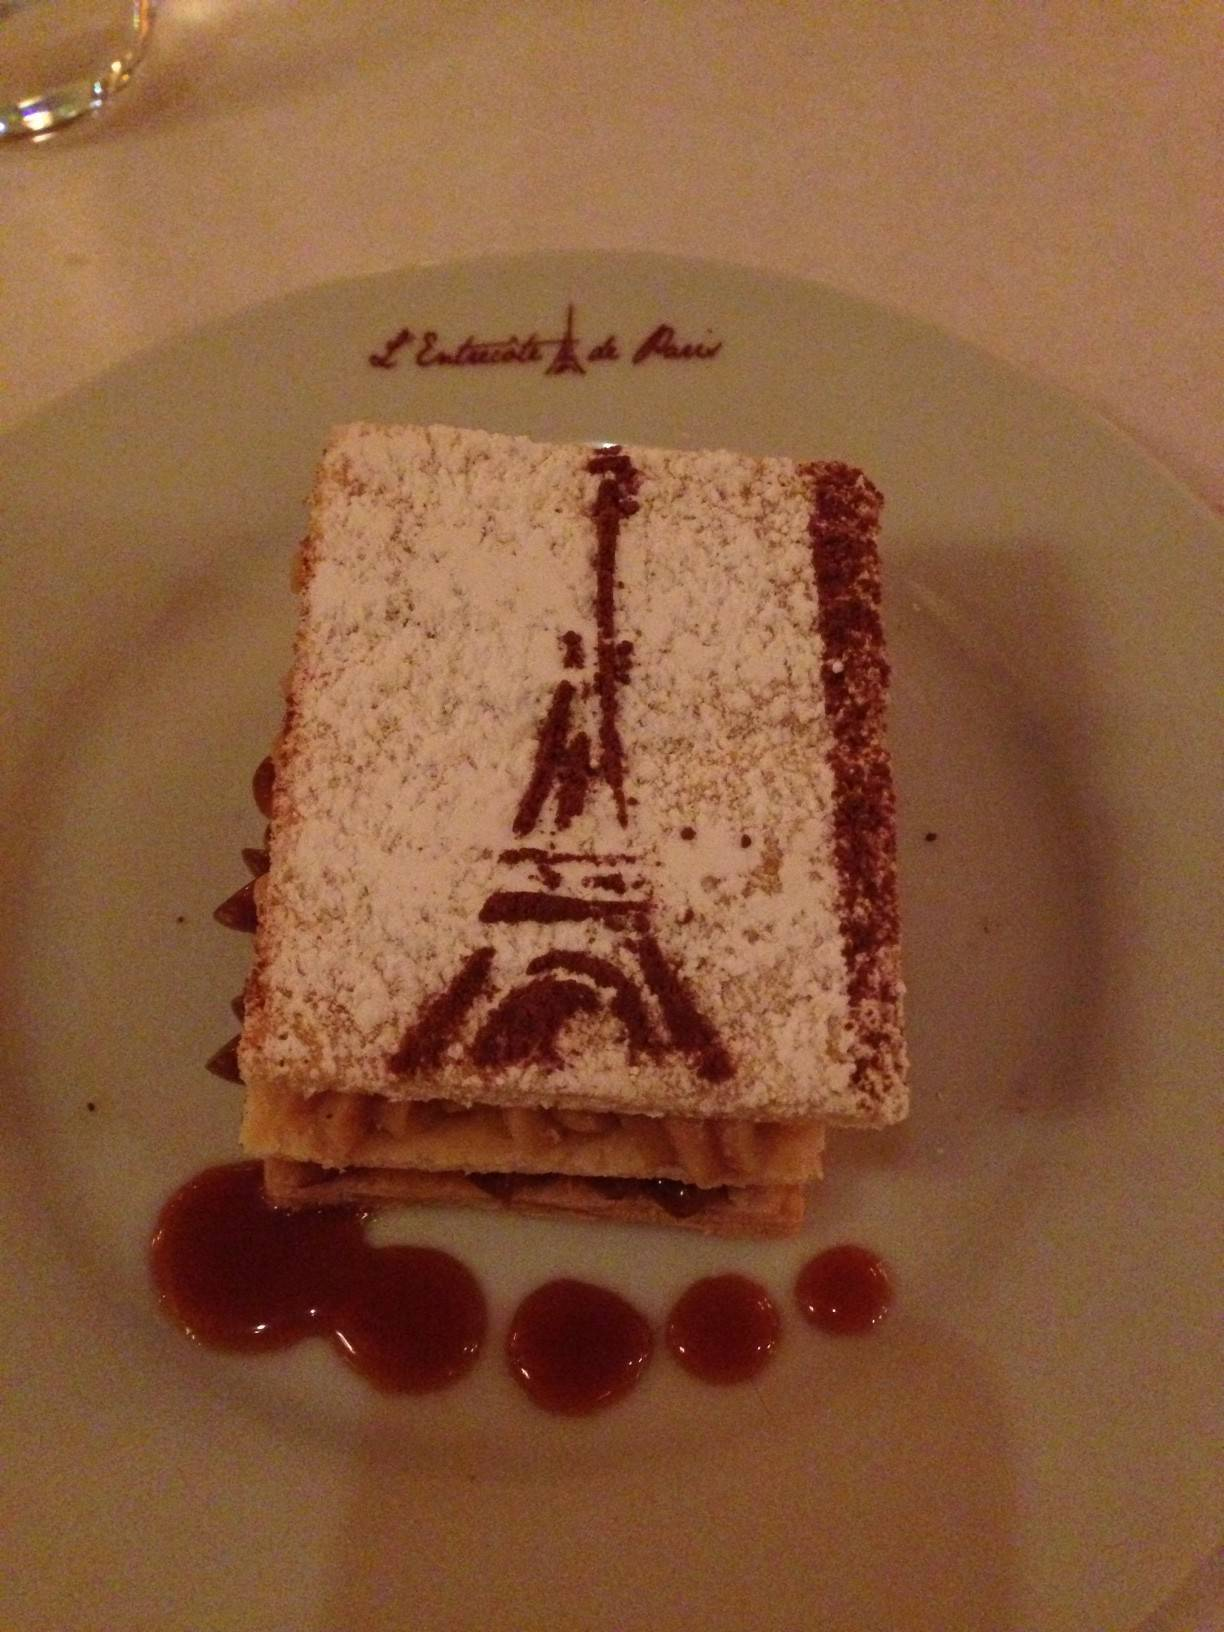 Millefeuille Cuban-style with dulce de leche